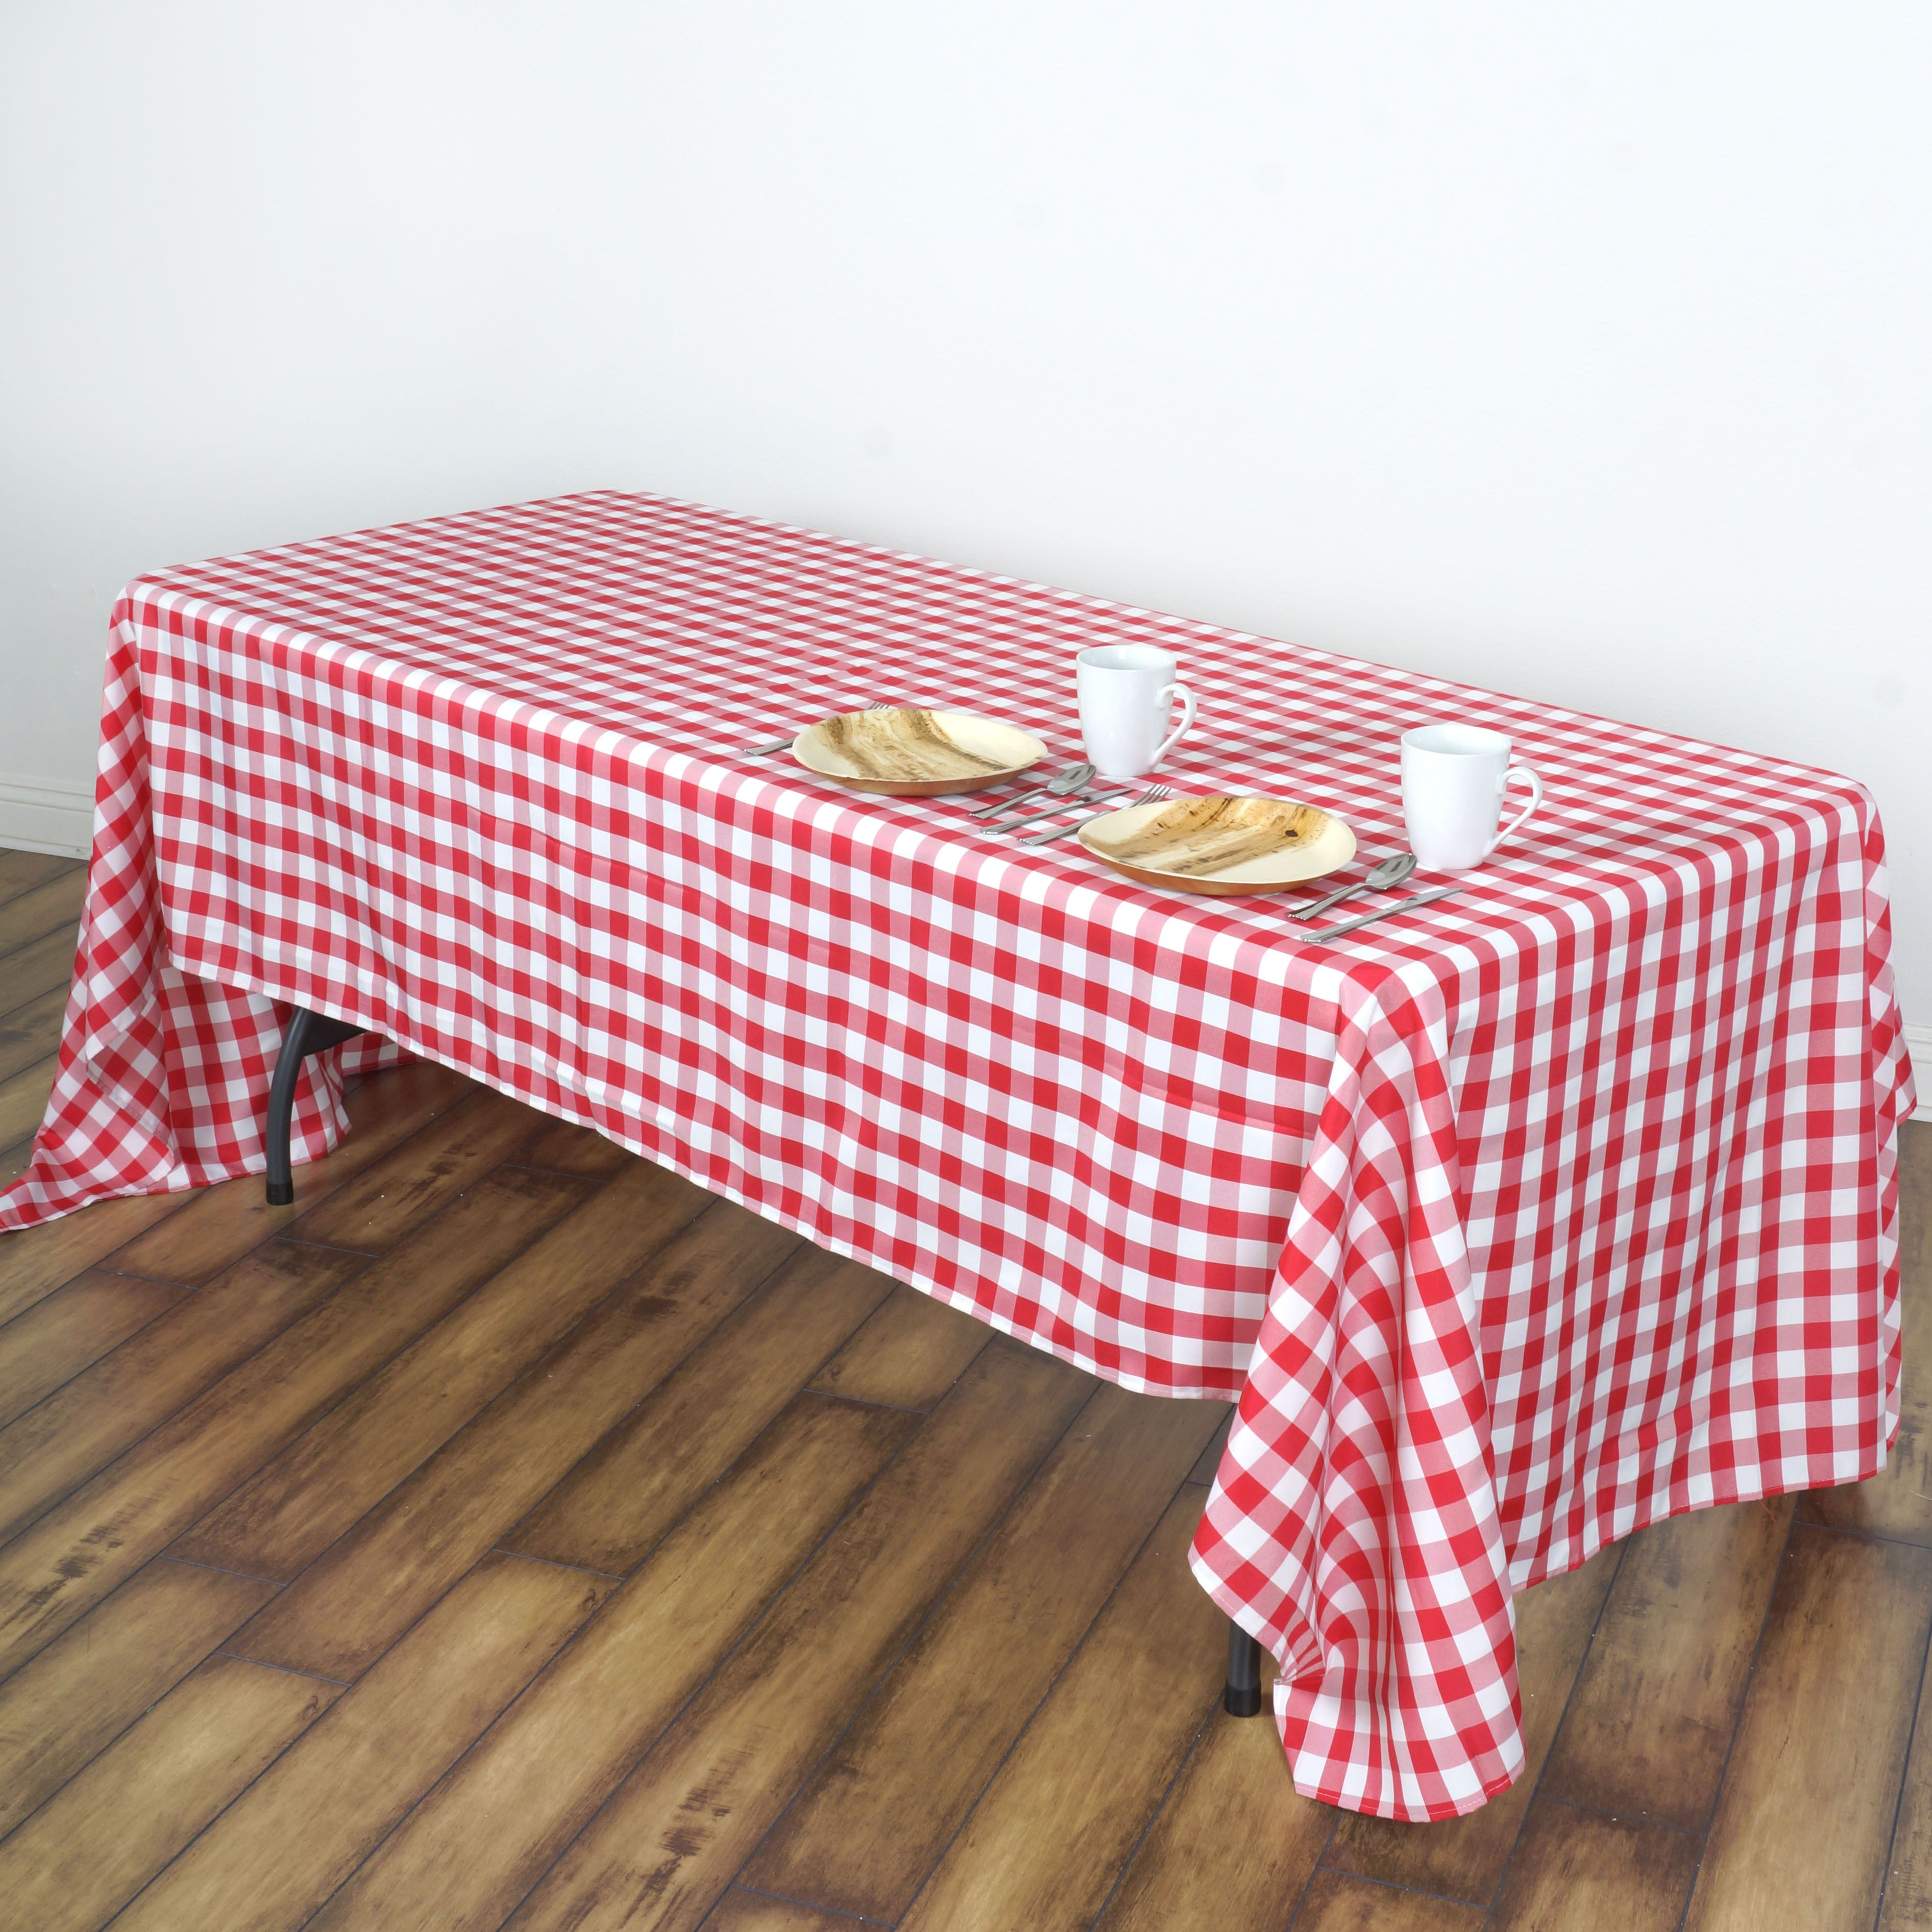 Balsacircle 60 X 102 Gingham Checkered Polyester Tablecloth For Garden Party Wedding Reception Catering Dining Table Linens Walmart Com Checkered Tablecloth Plaid Tablecloth Table Cloth